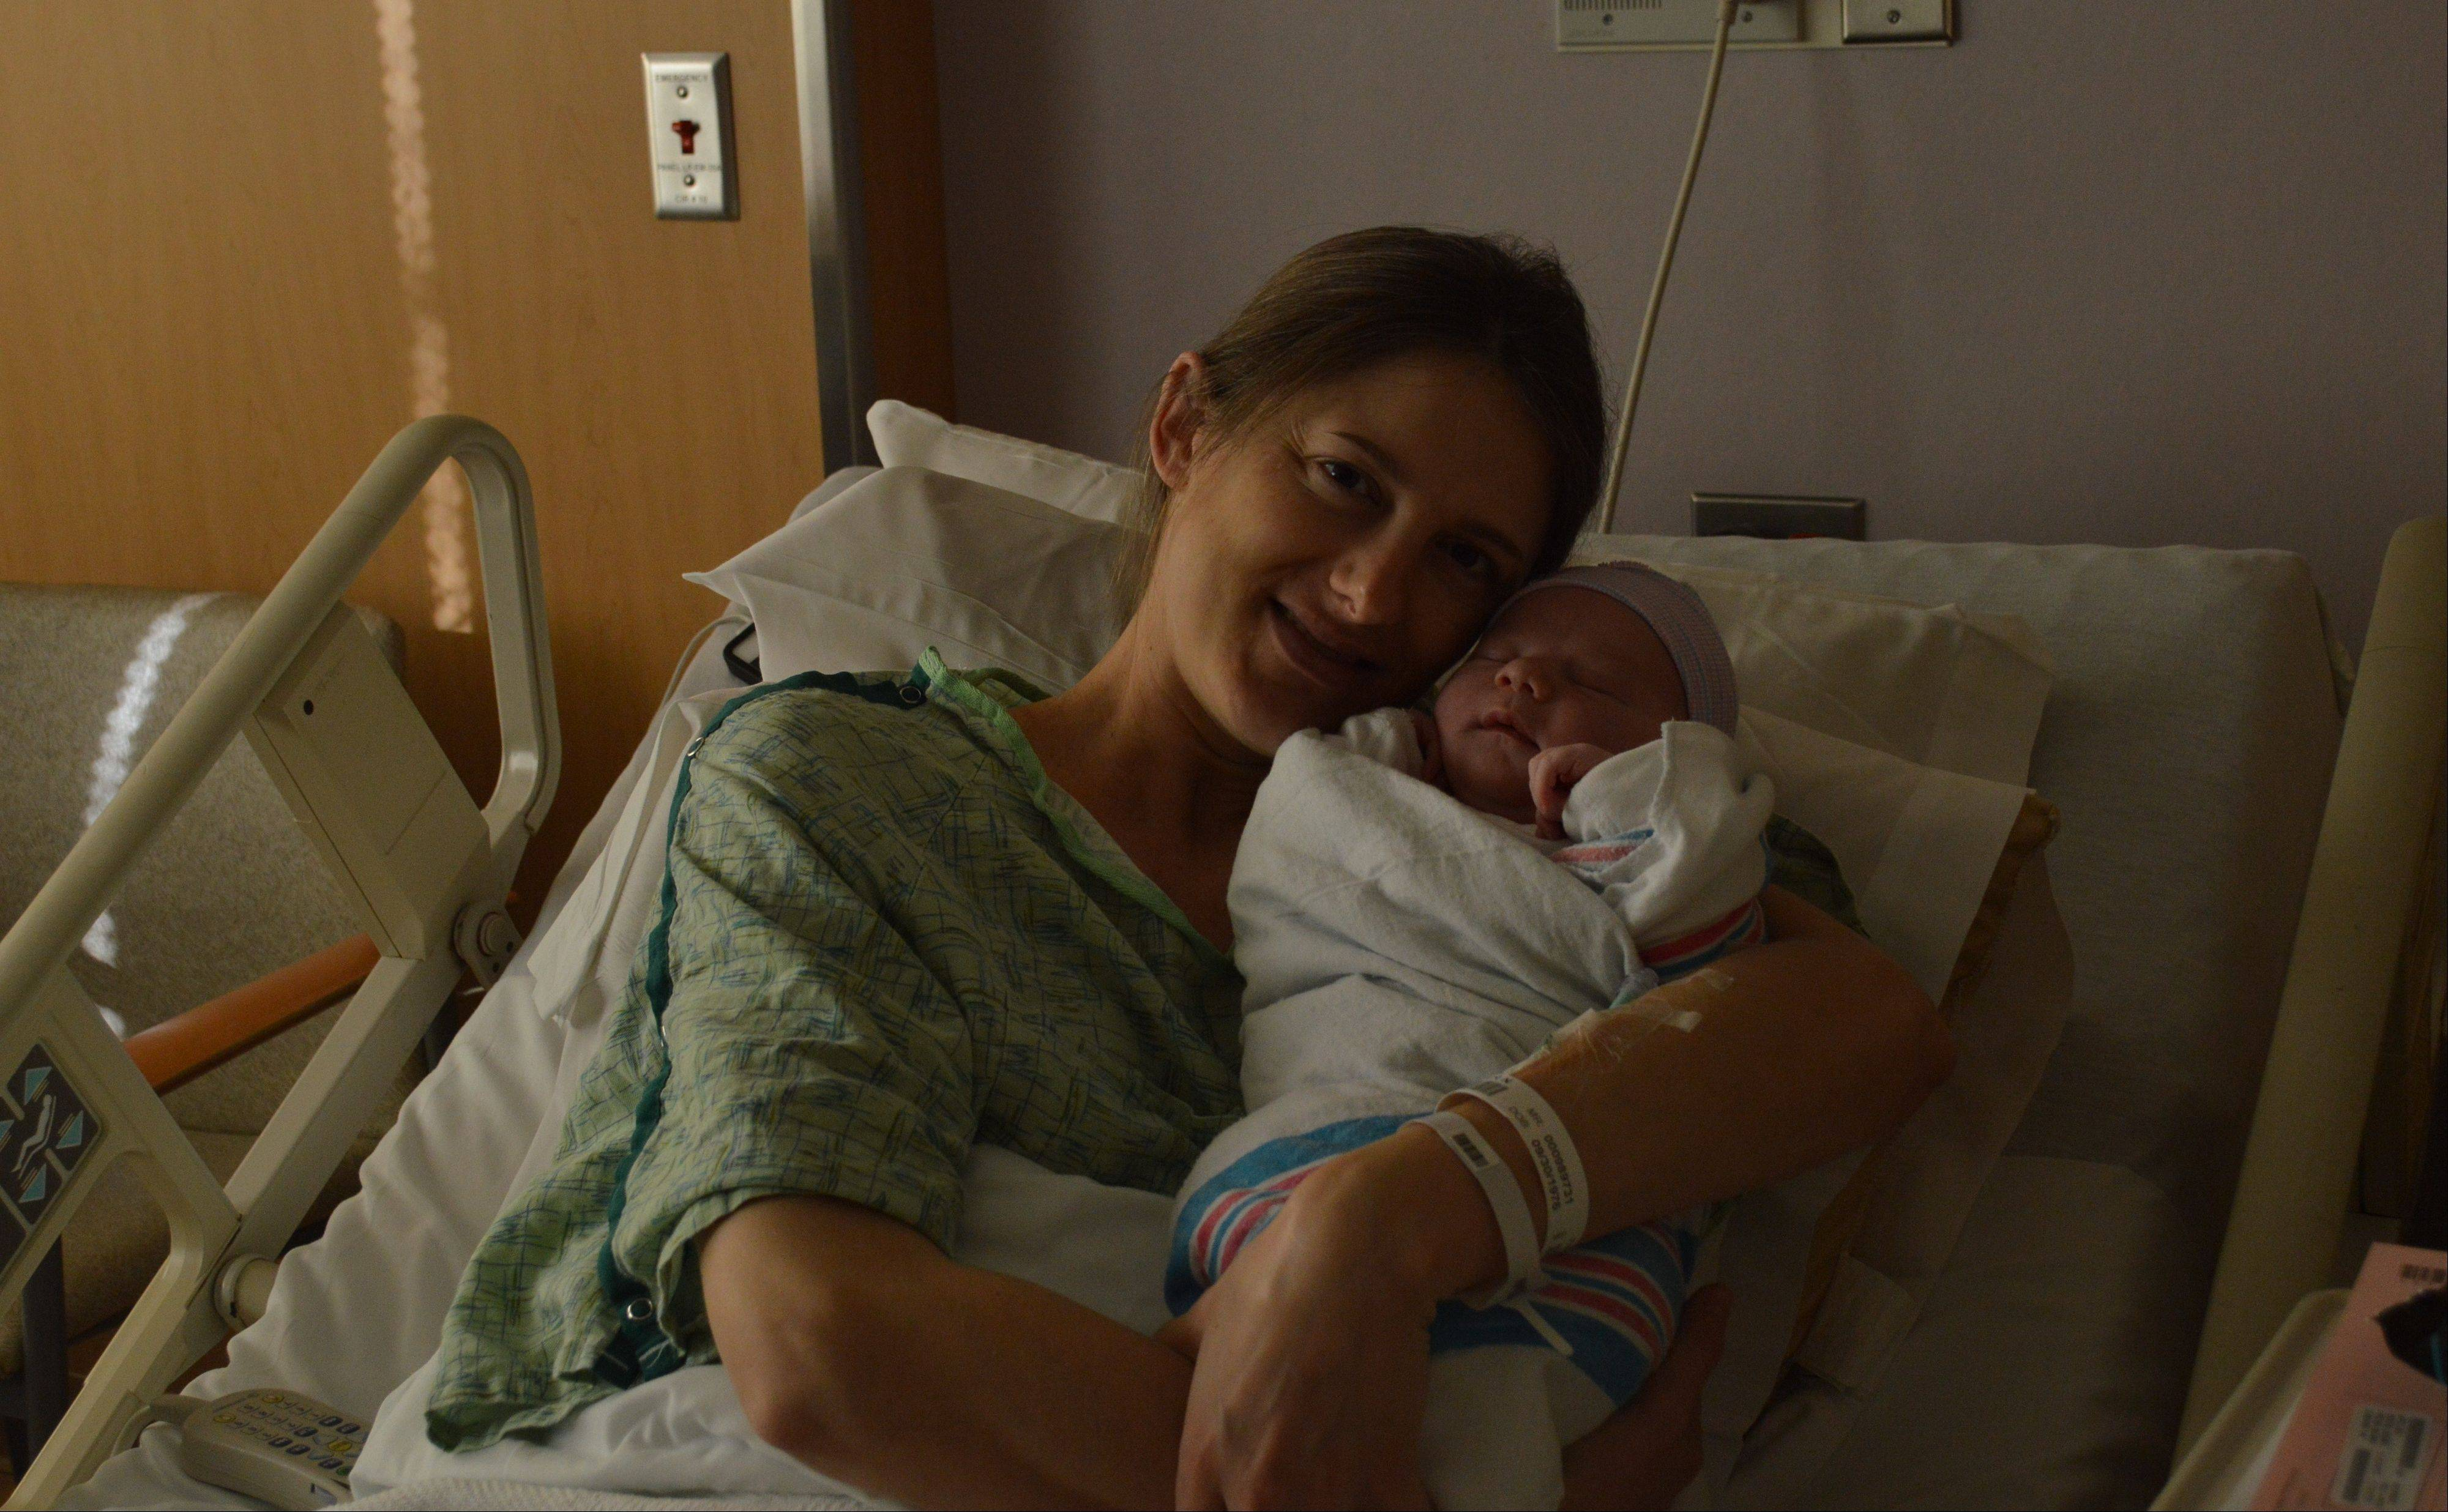 Jennifer White's son, Joshua, was born at 10 a.m. on 11/12/13 at Advocate Good Samaritan Hospital in Downers Grove. The healthy baby boy was supposed to arrive a week earlier.